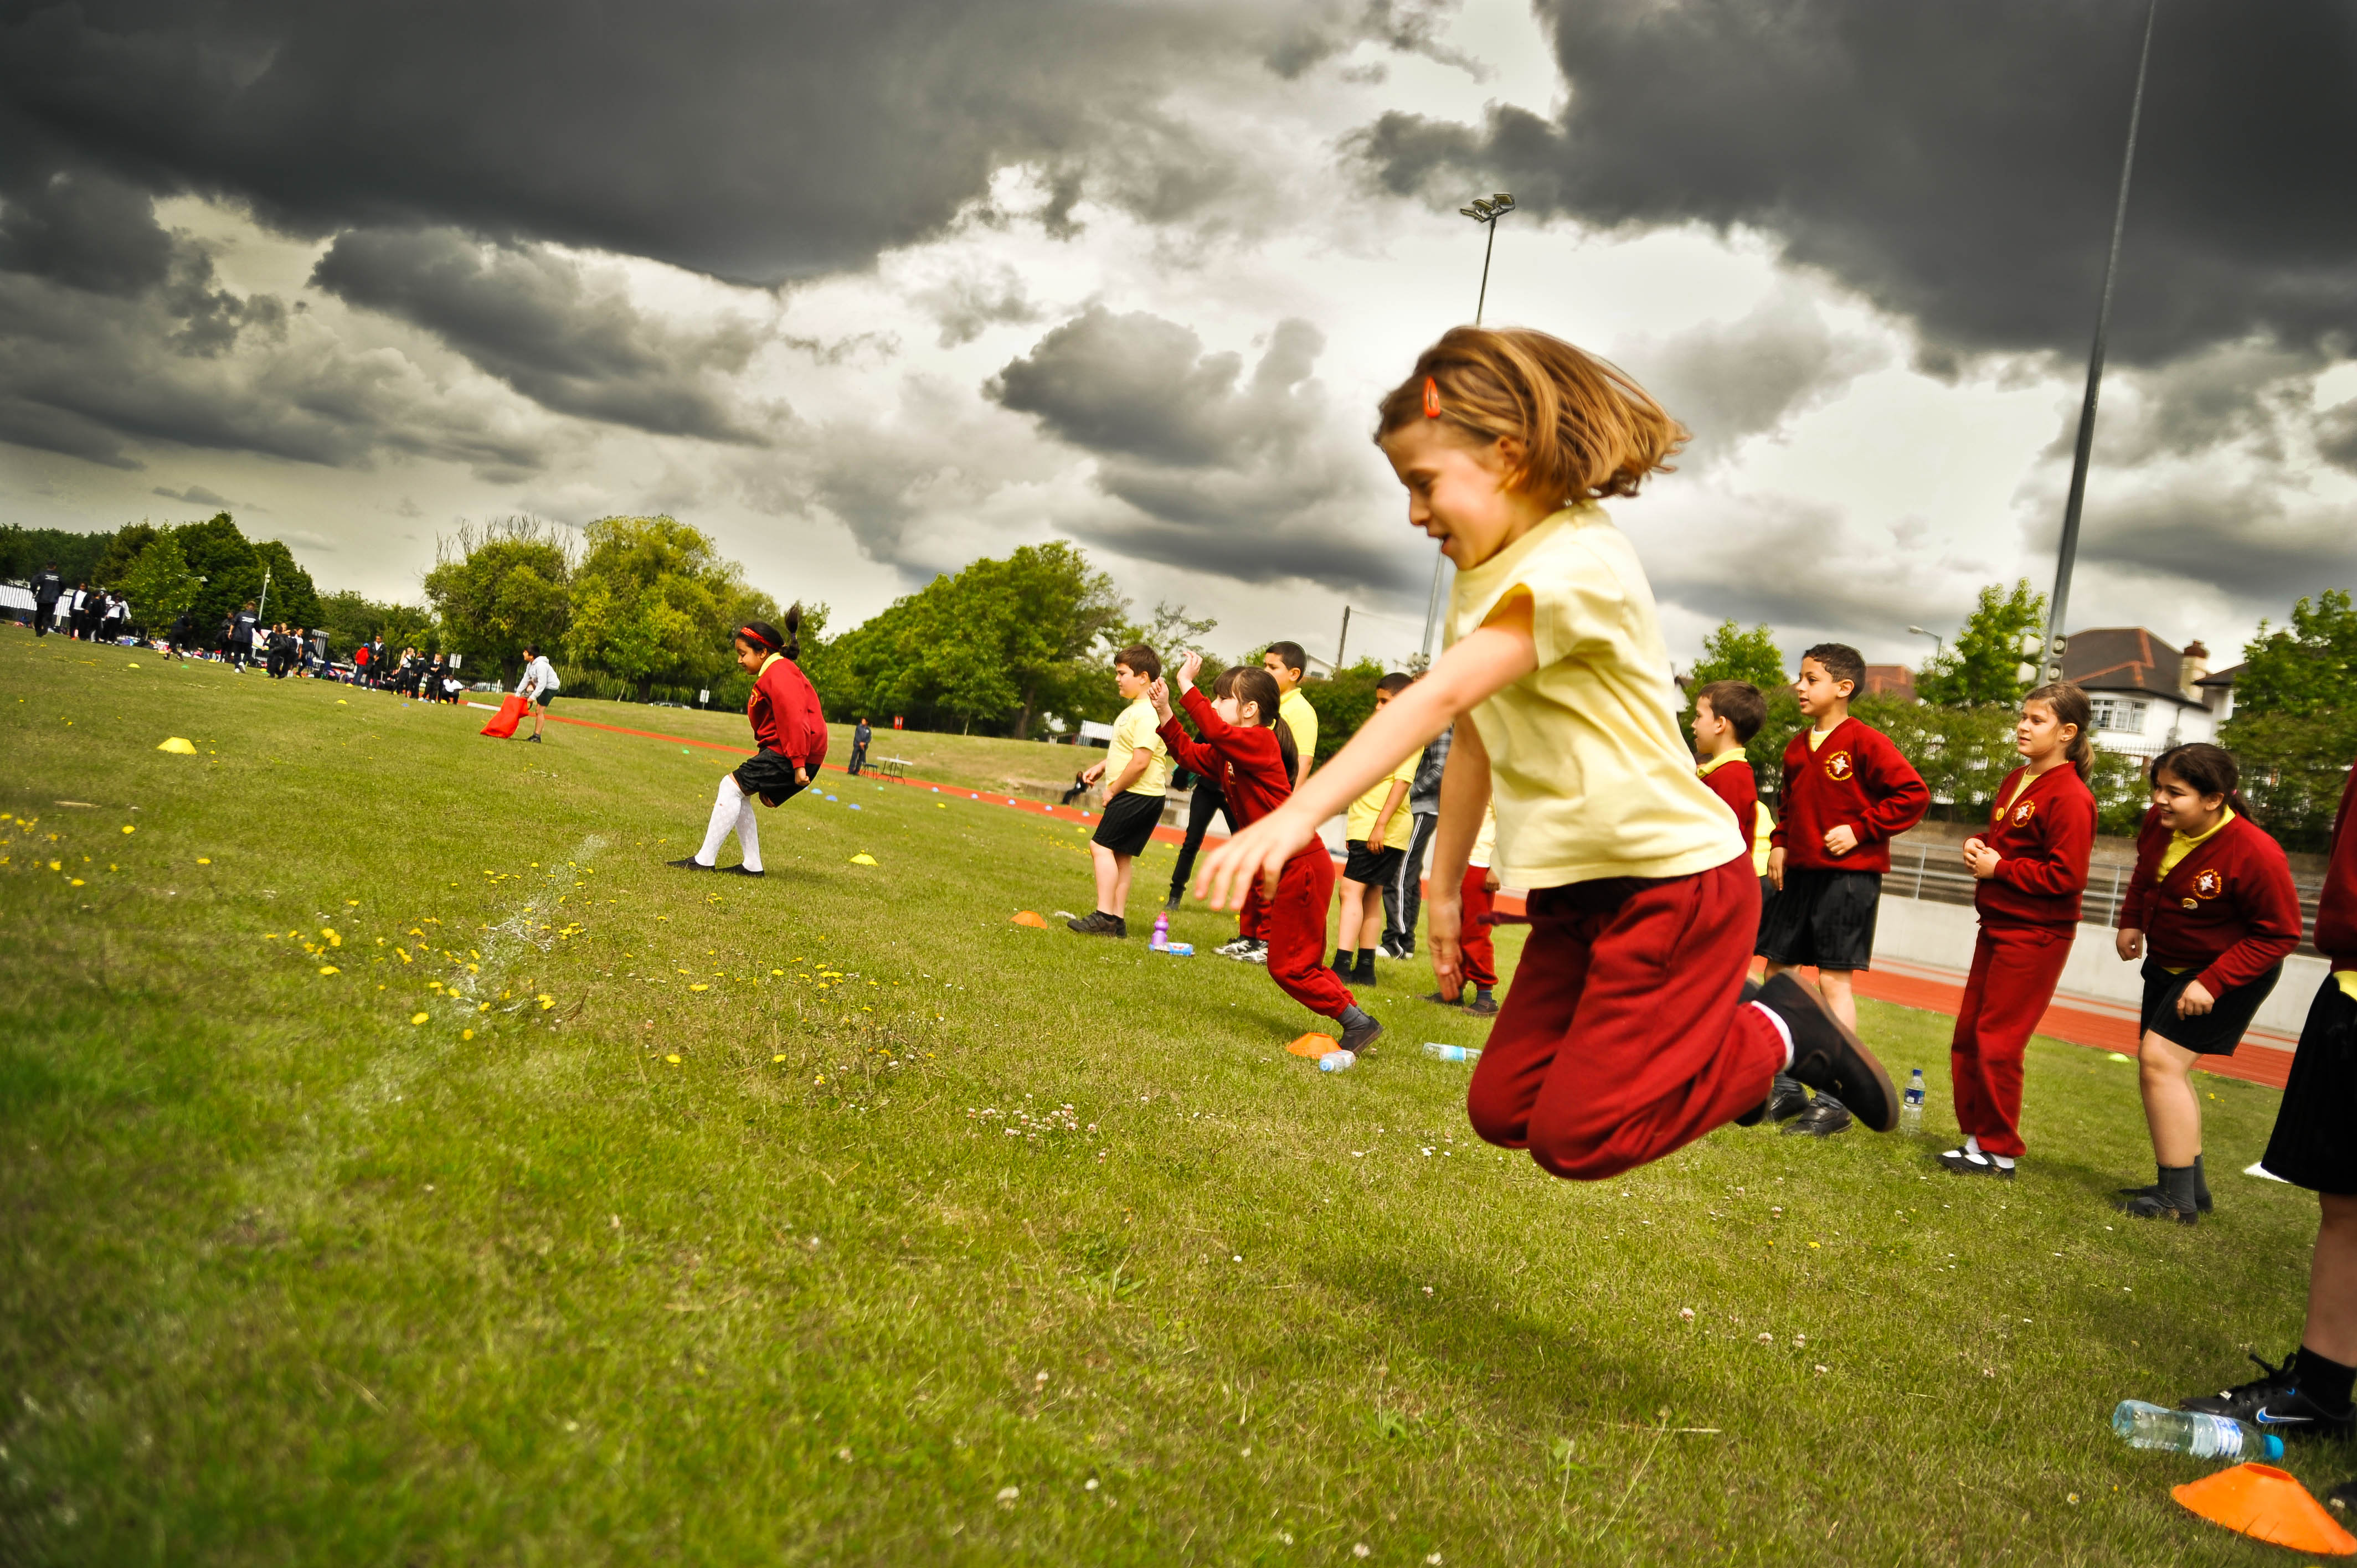 The problem with not adequately prioritising daily physical activity at school